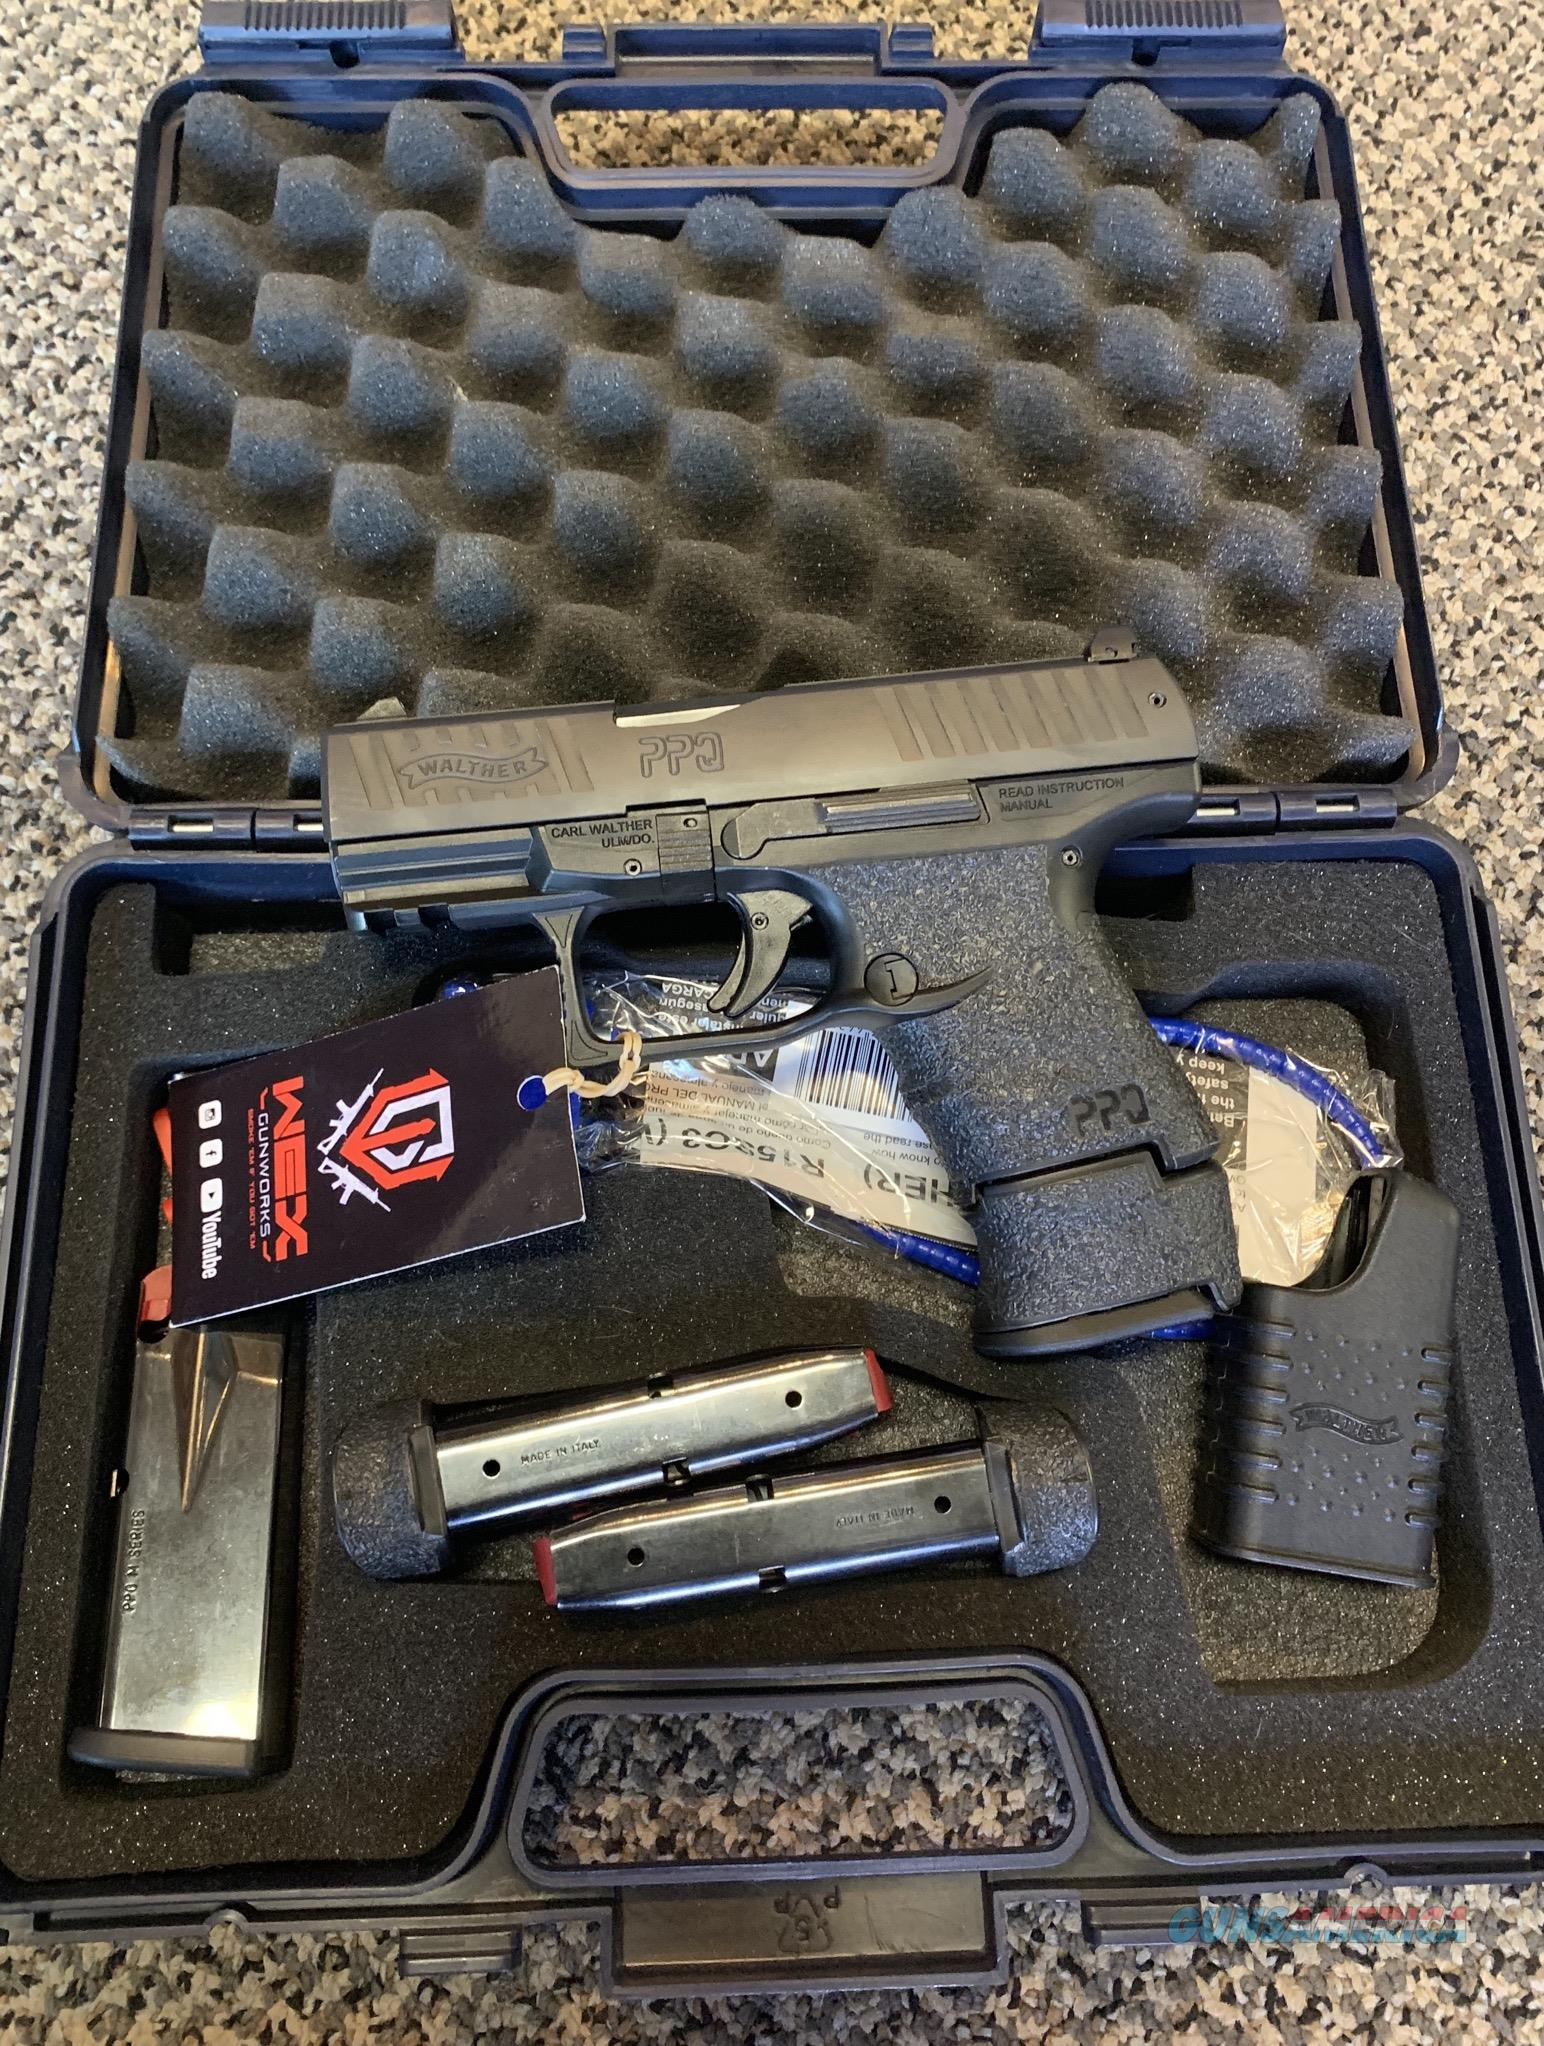 WALTHER PPQ M2 SC 9MM SUBCOMPACT 4 MAGAZINES  Guns > Pistols > Walther Pistols > Post WWII > P99/PPQ